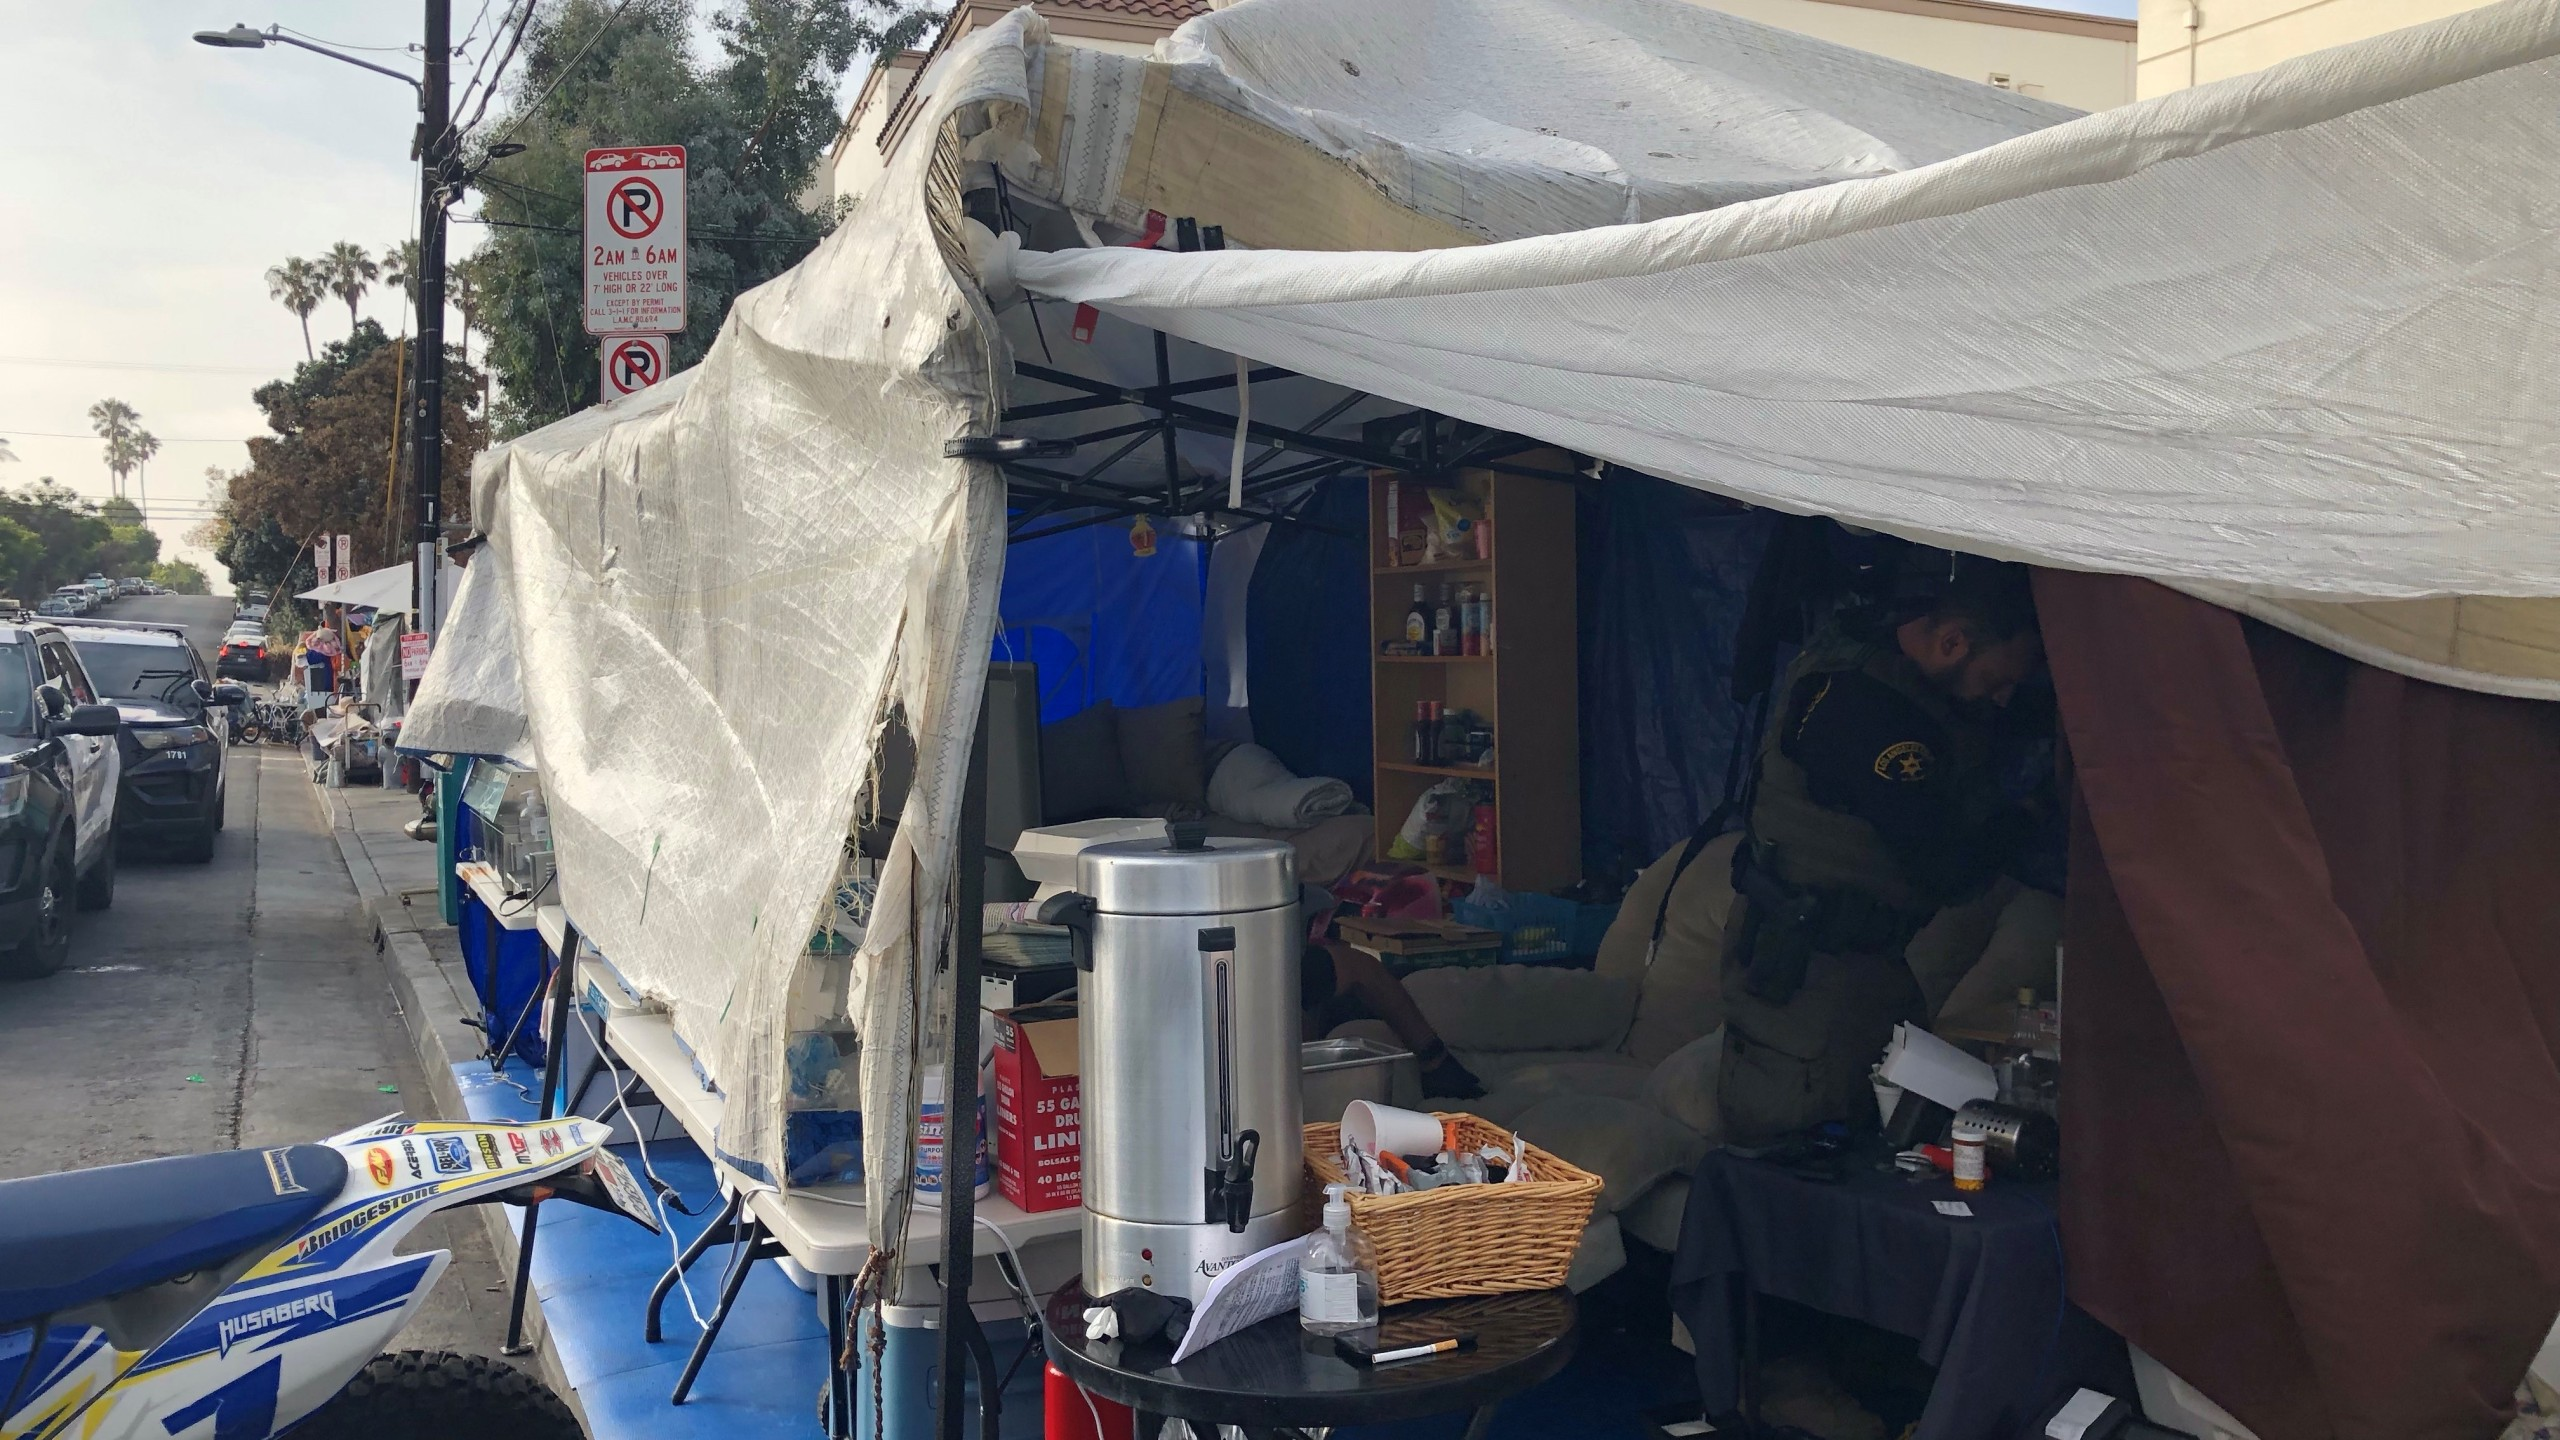 A self-proclaimed homeless advocate was arrested in the Venice area of Los Angeles after he was allegedly found selling narcotics to the homeless population. (Los Angeles Sheriff's Department)